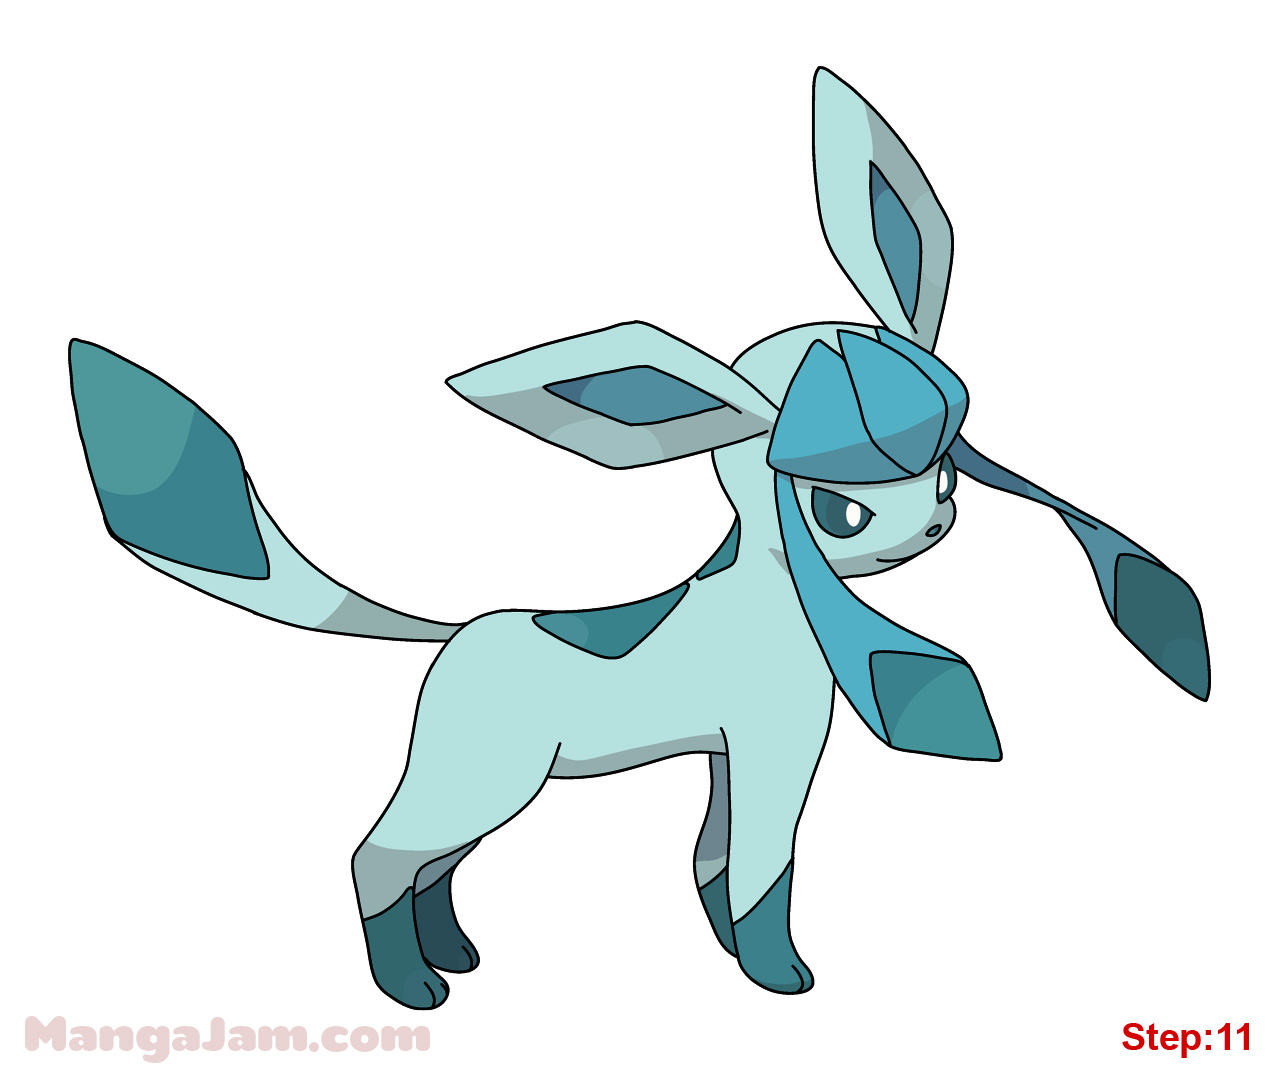 Pokemon drawing images at getdrawings free for personal use 1280x1070 how to draw glaceon from pokemon step 11 sisi pinterest altavistaventures Image collections